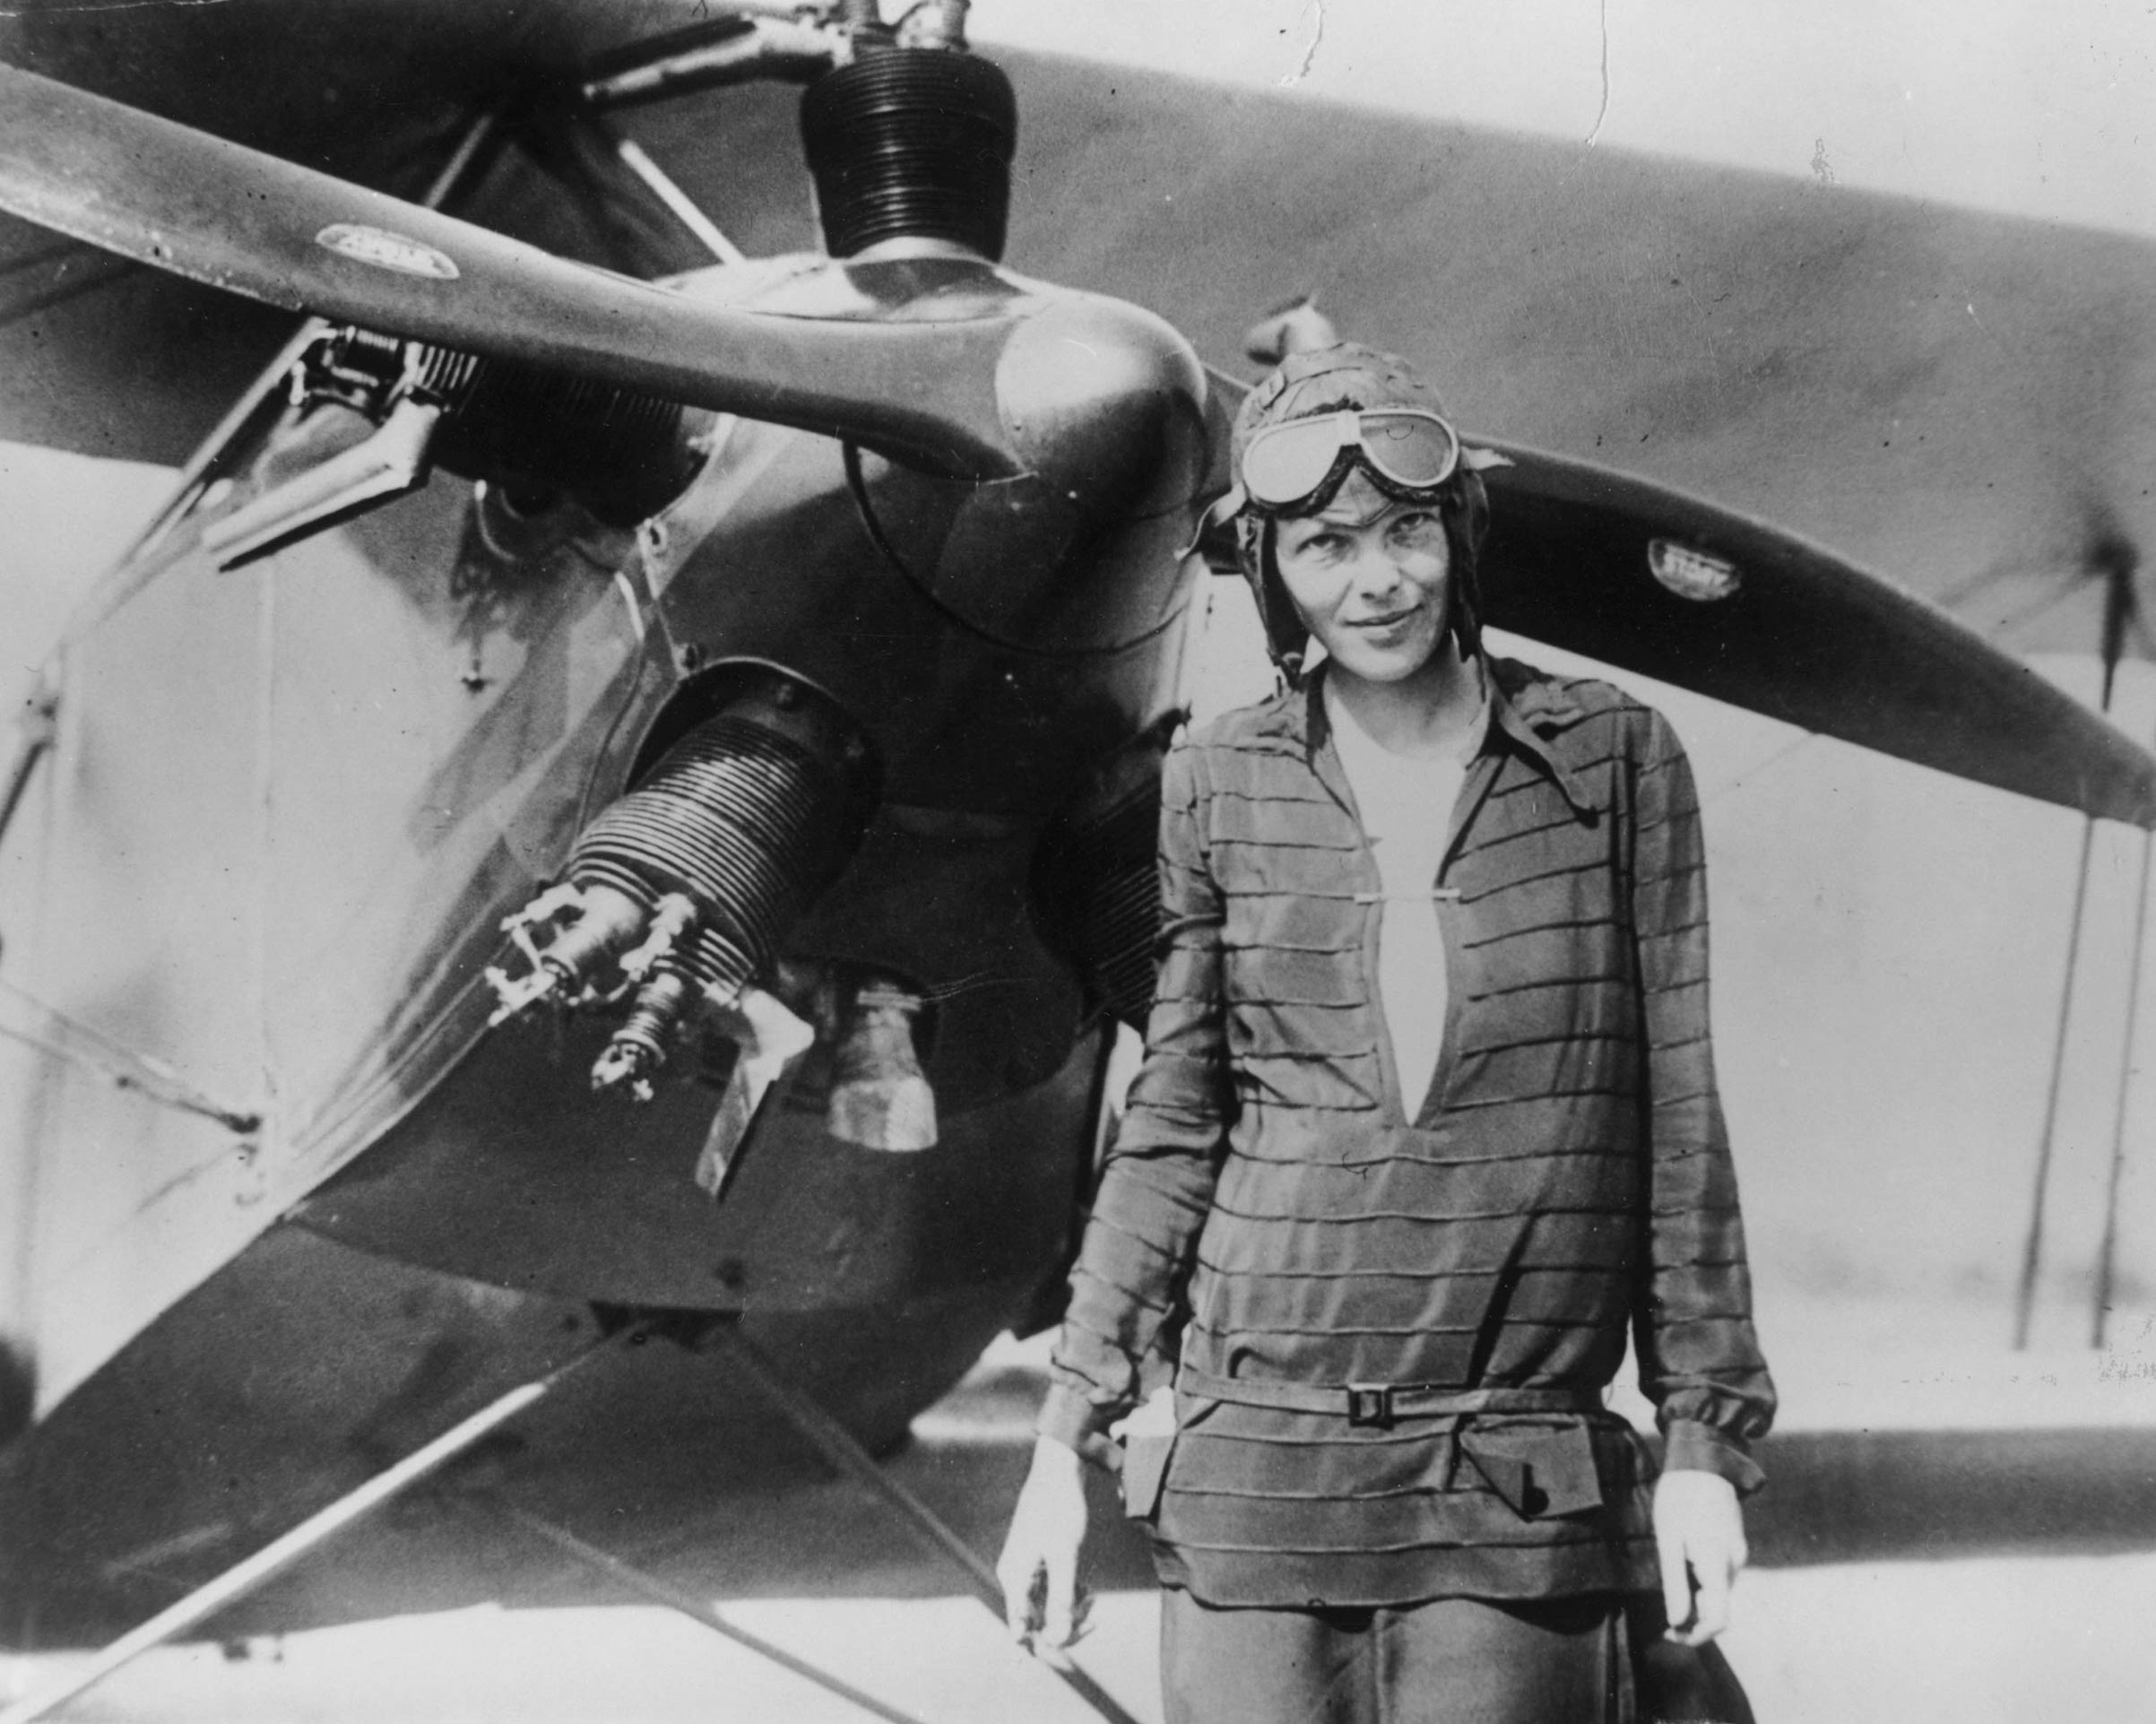 A June 1928 photo of Amelia Earhart in front of the bi-plane called 'Friendship' in Newfoundland.